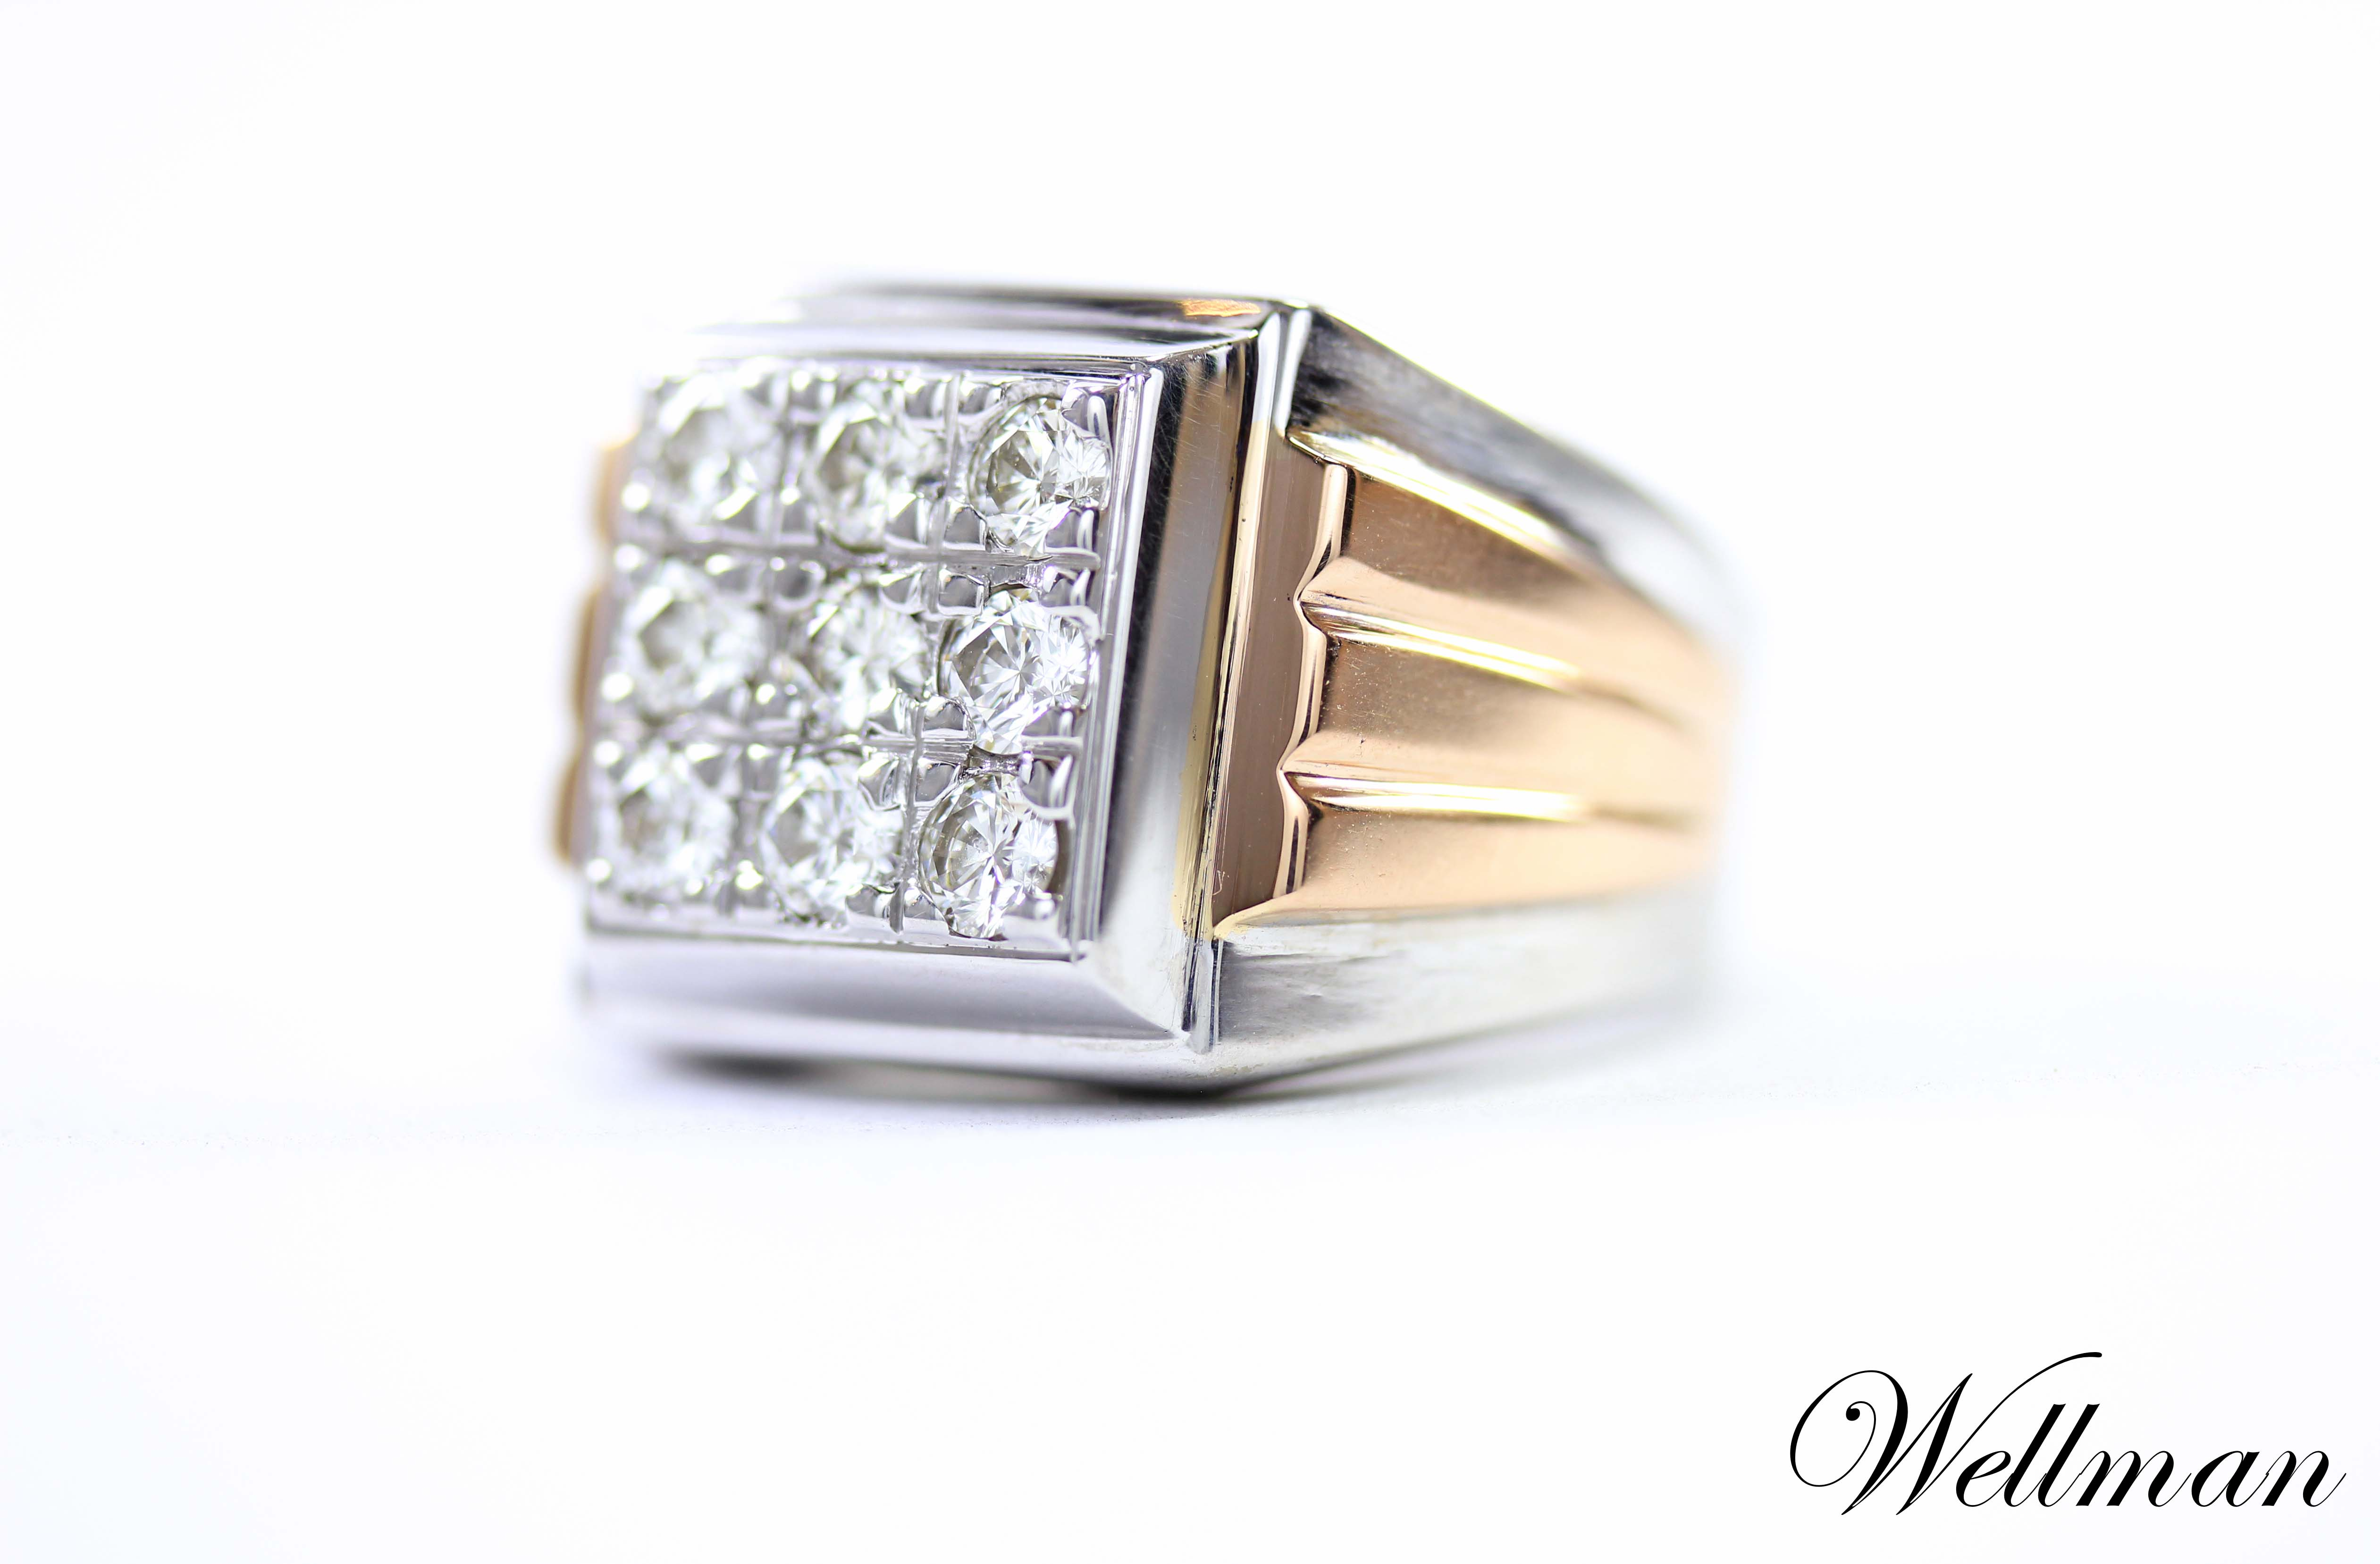 mens ring Wellman jewelry